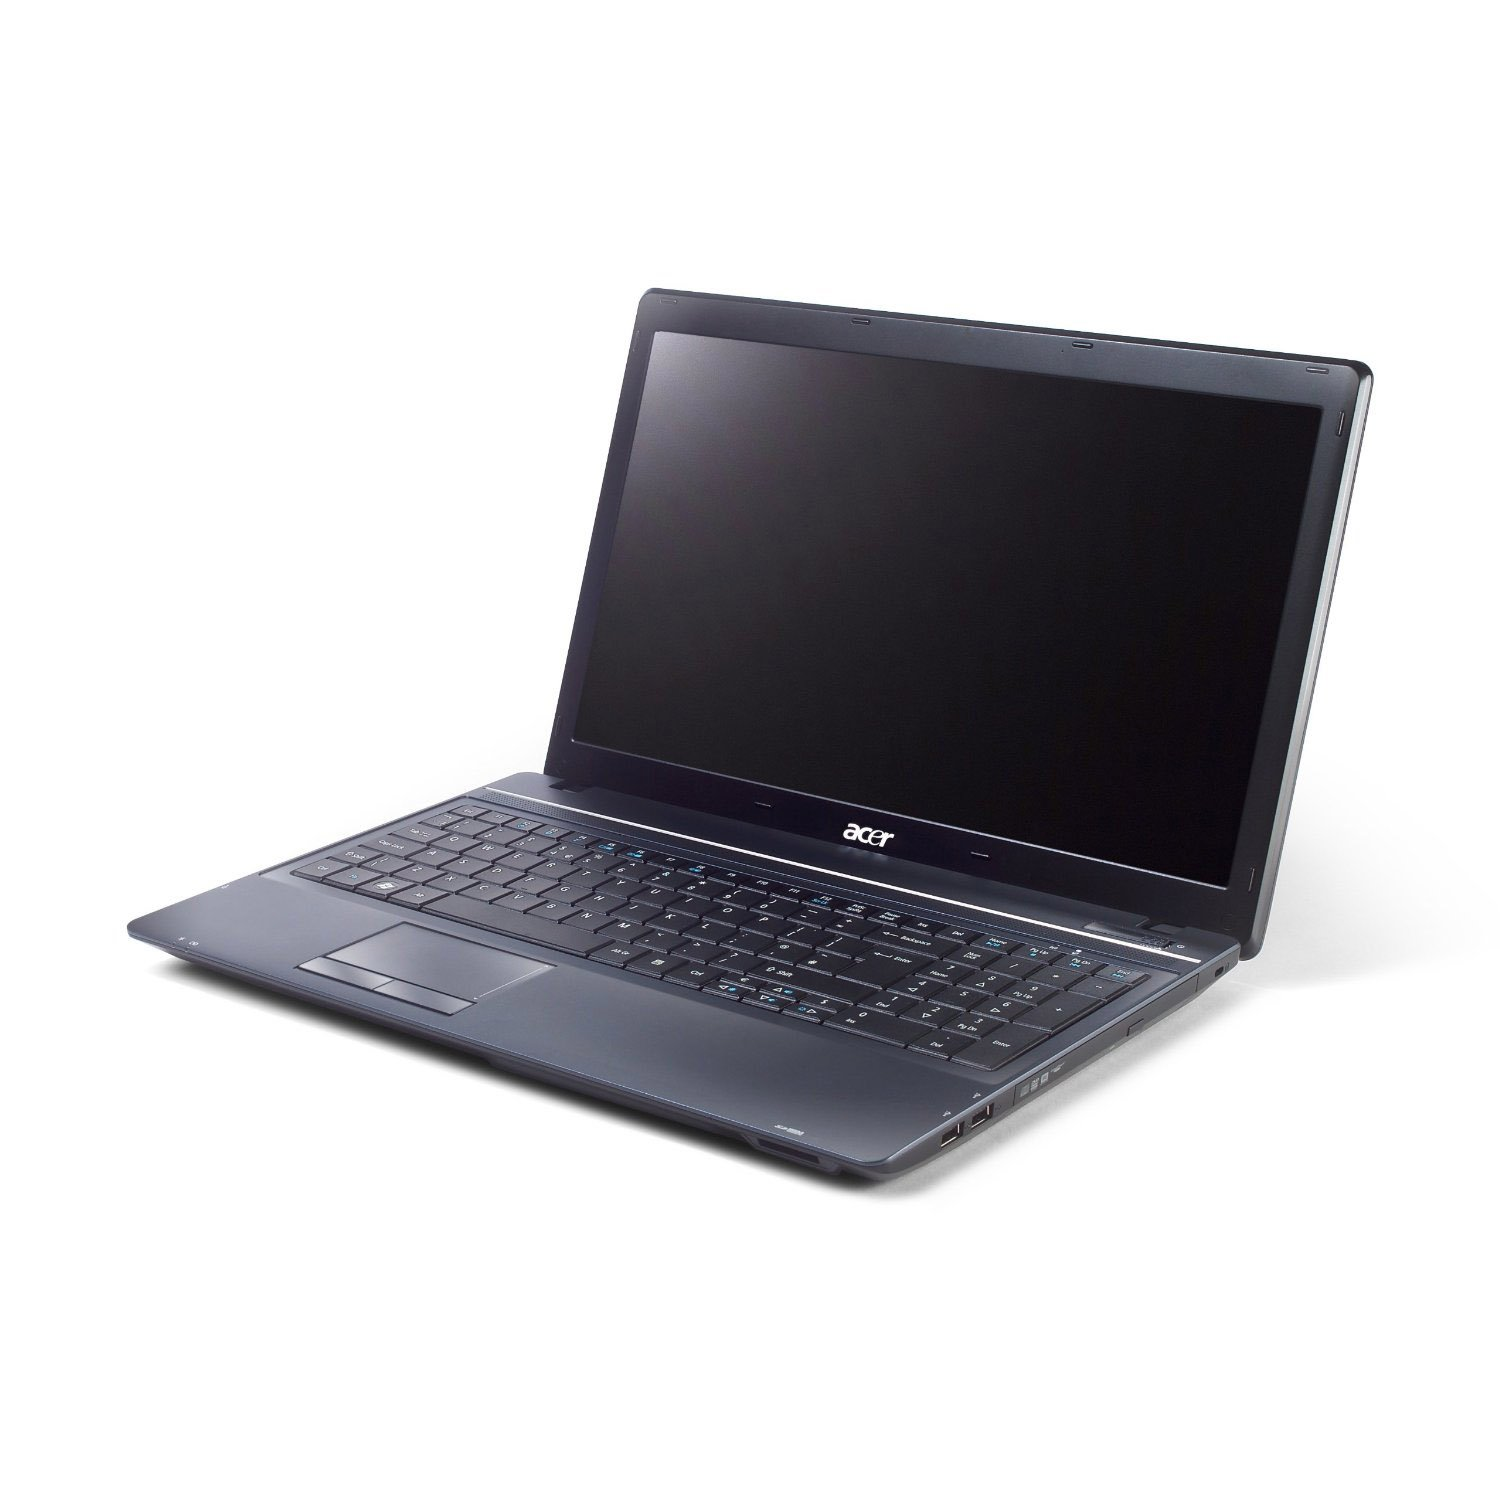 Acer TravelMate 5742Z-P624G32Mnss - Ordenador portátil (Portátil, Gigabit Ethernet, WLAN, Wi-Fi, DVD Super Multi DL, Touchpad, Windows XP Professional): ...